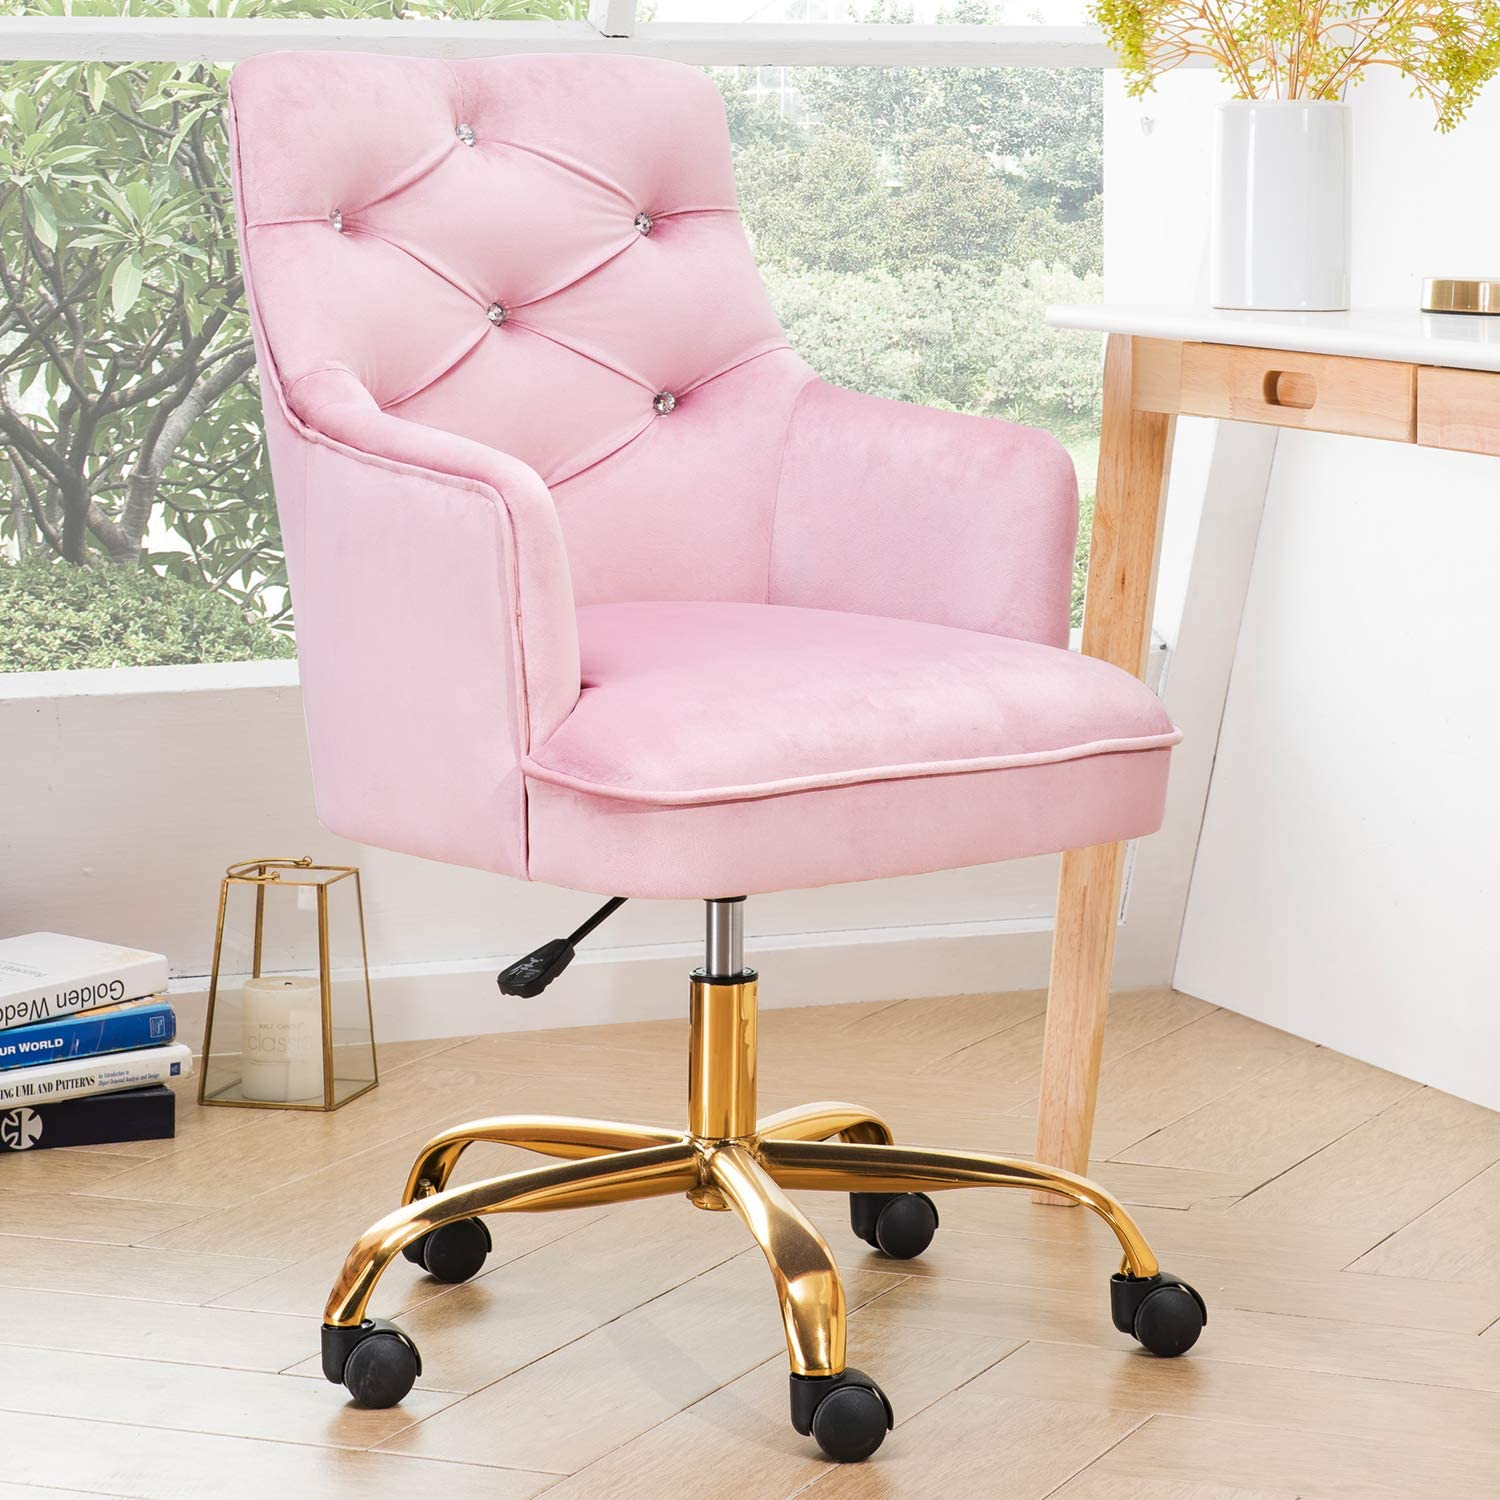 OVIOS Cute Desk Chair,Plush Velvet Office Chair for Girl or Lady,Modern,Comfortble,Nice Vanity Chair and Task Chair with Gold Base. (Pink)